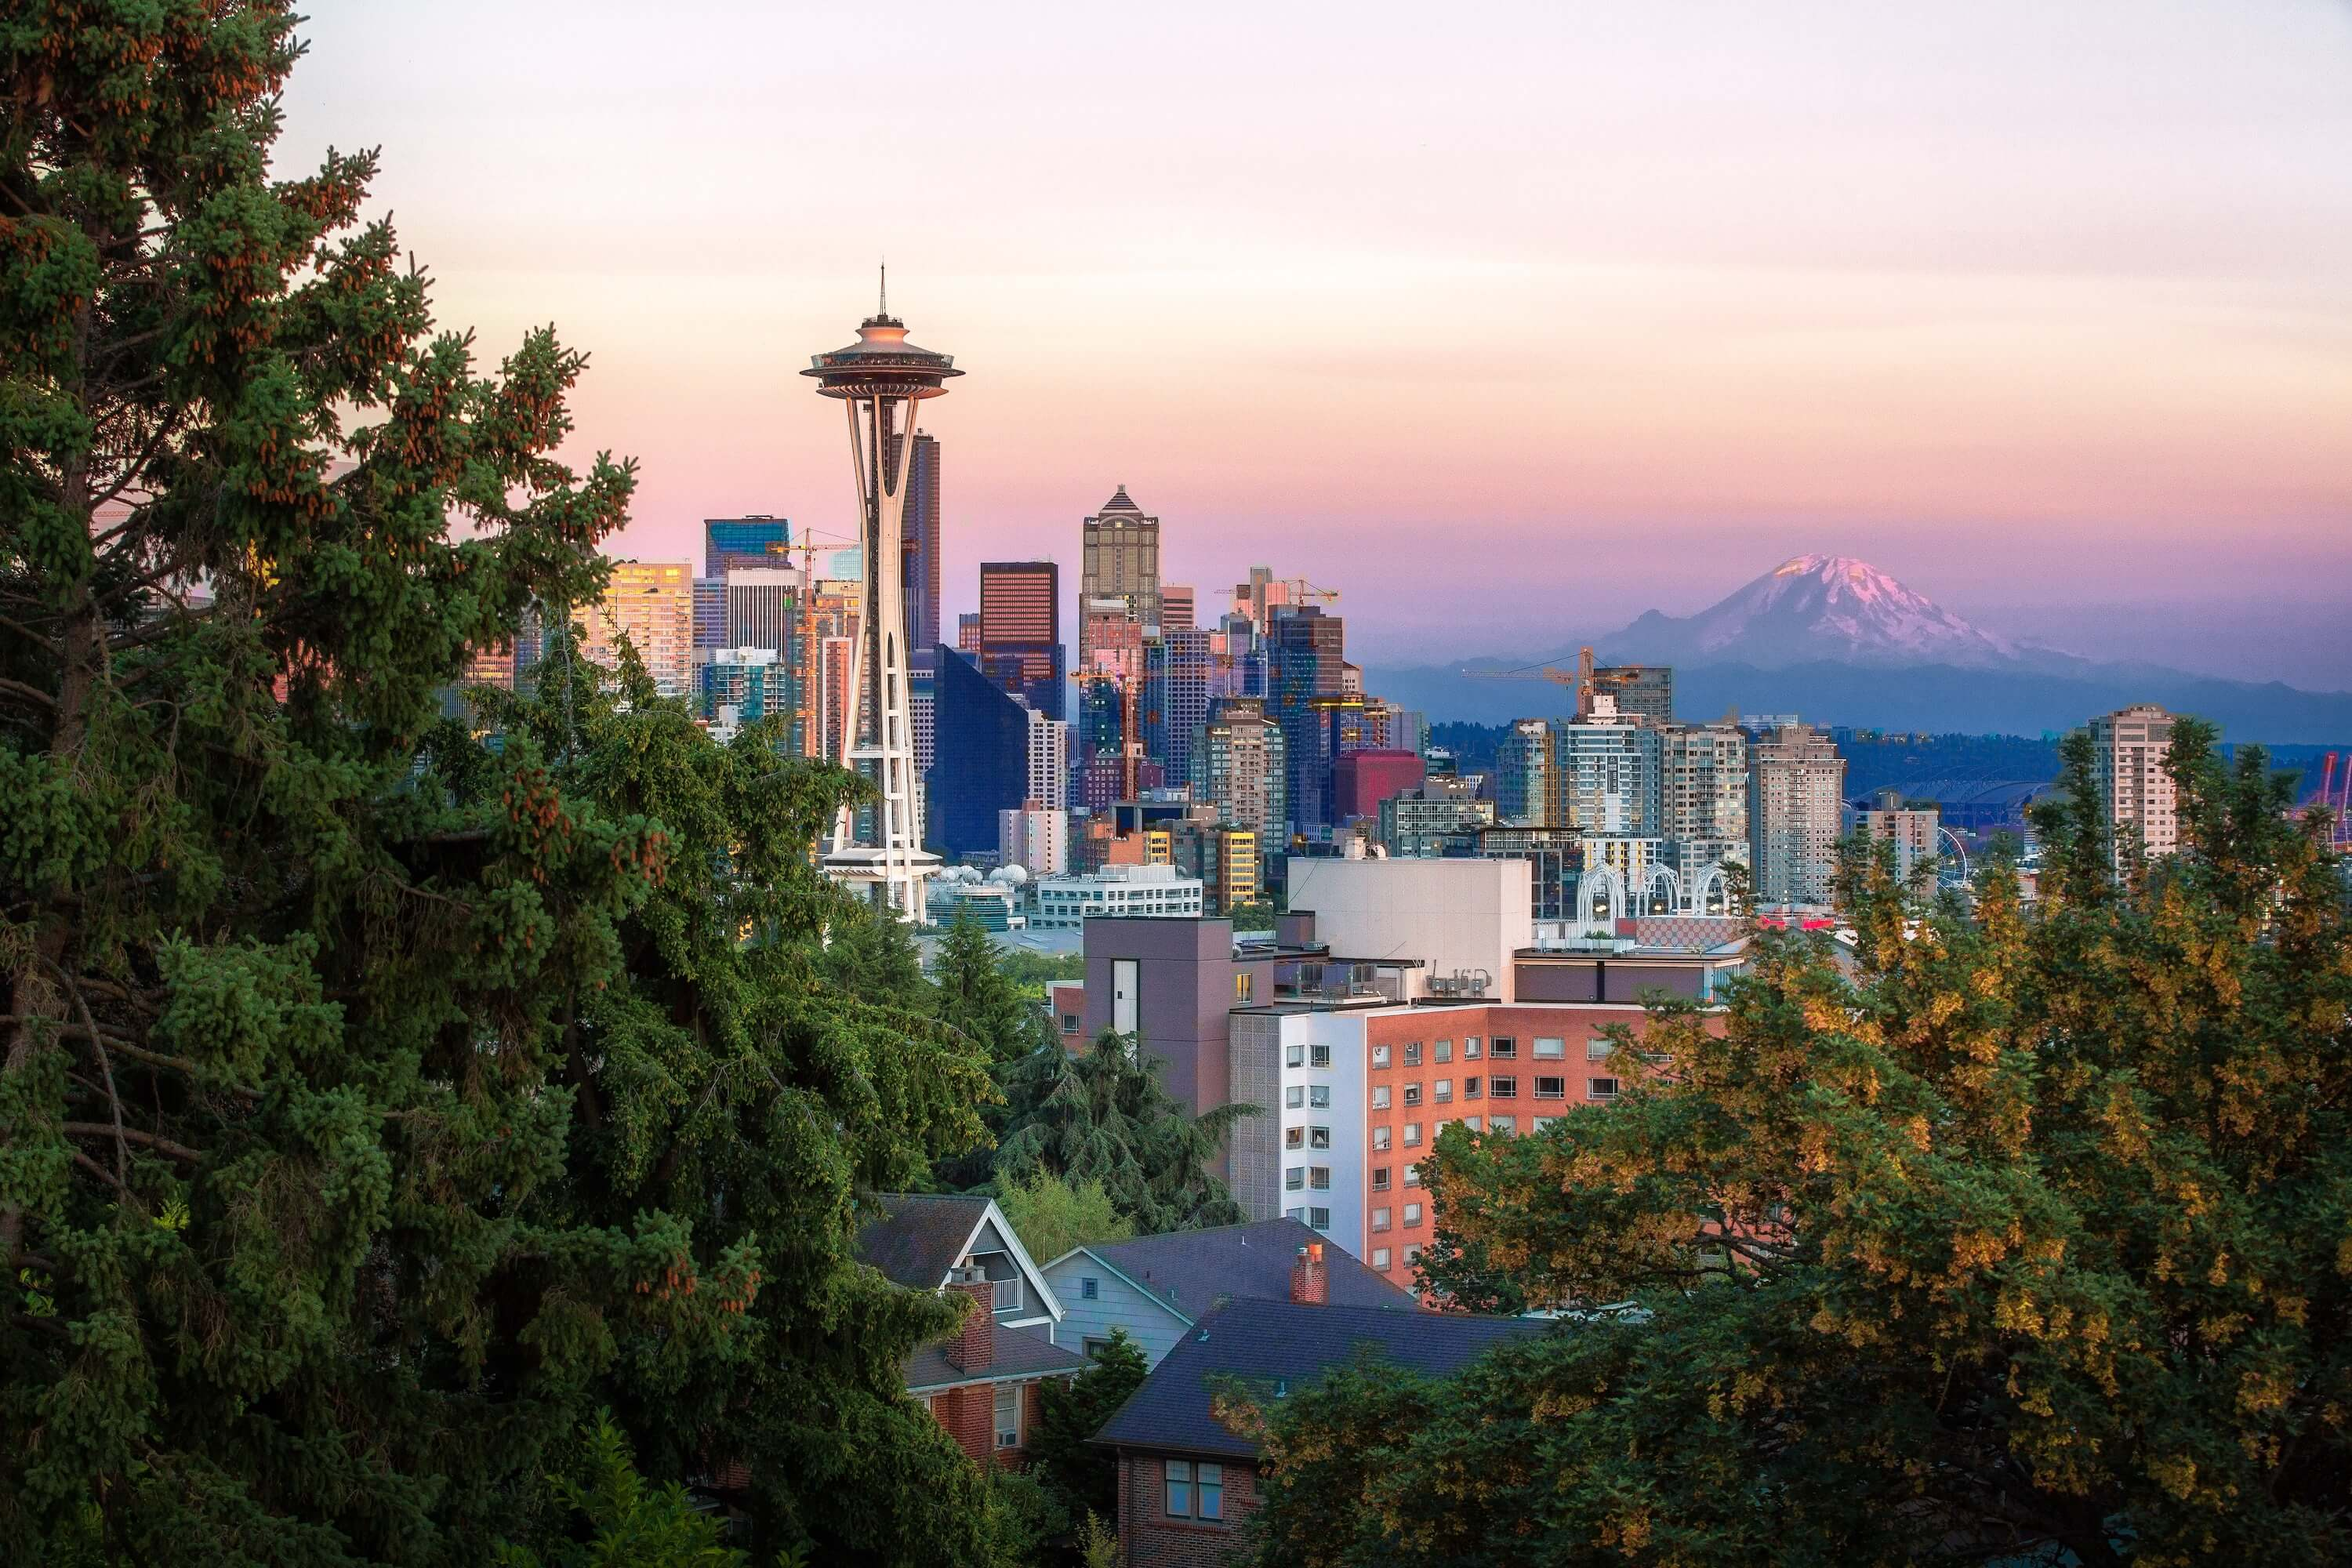 The Seattle skyline is seen at sunset with Mount Ranier in the background and lush greens in the foreground